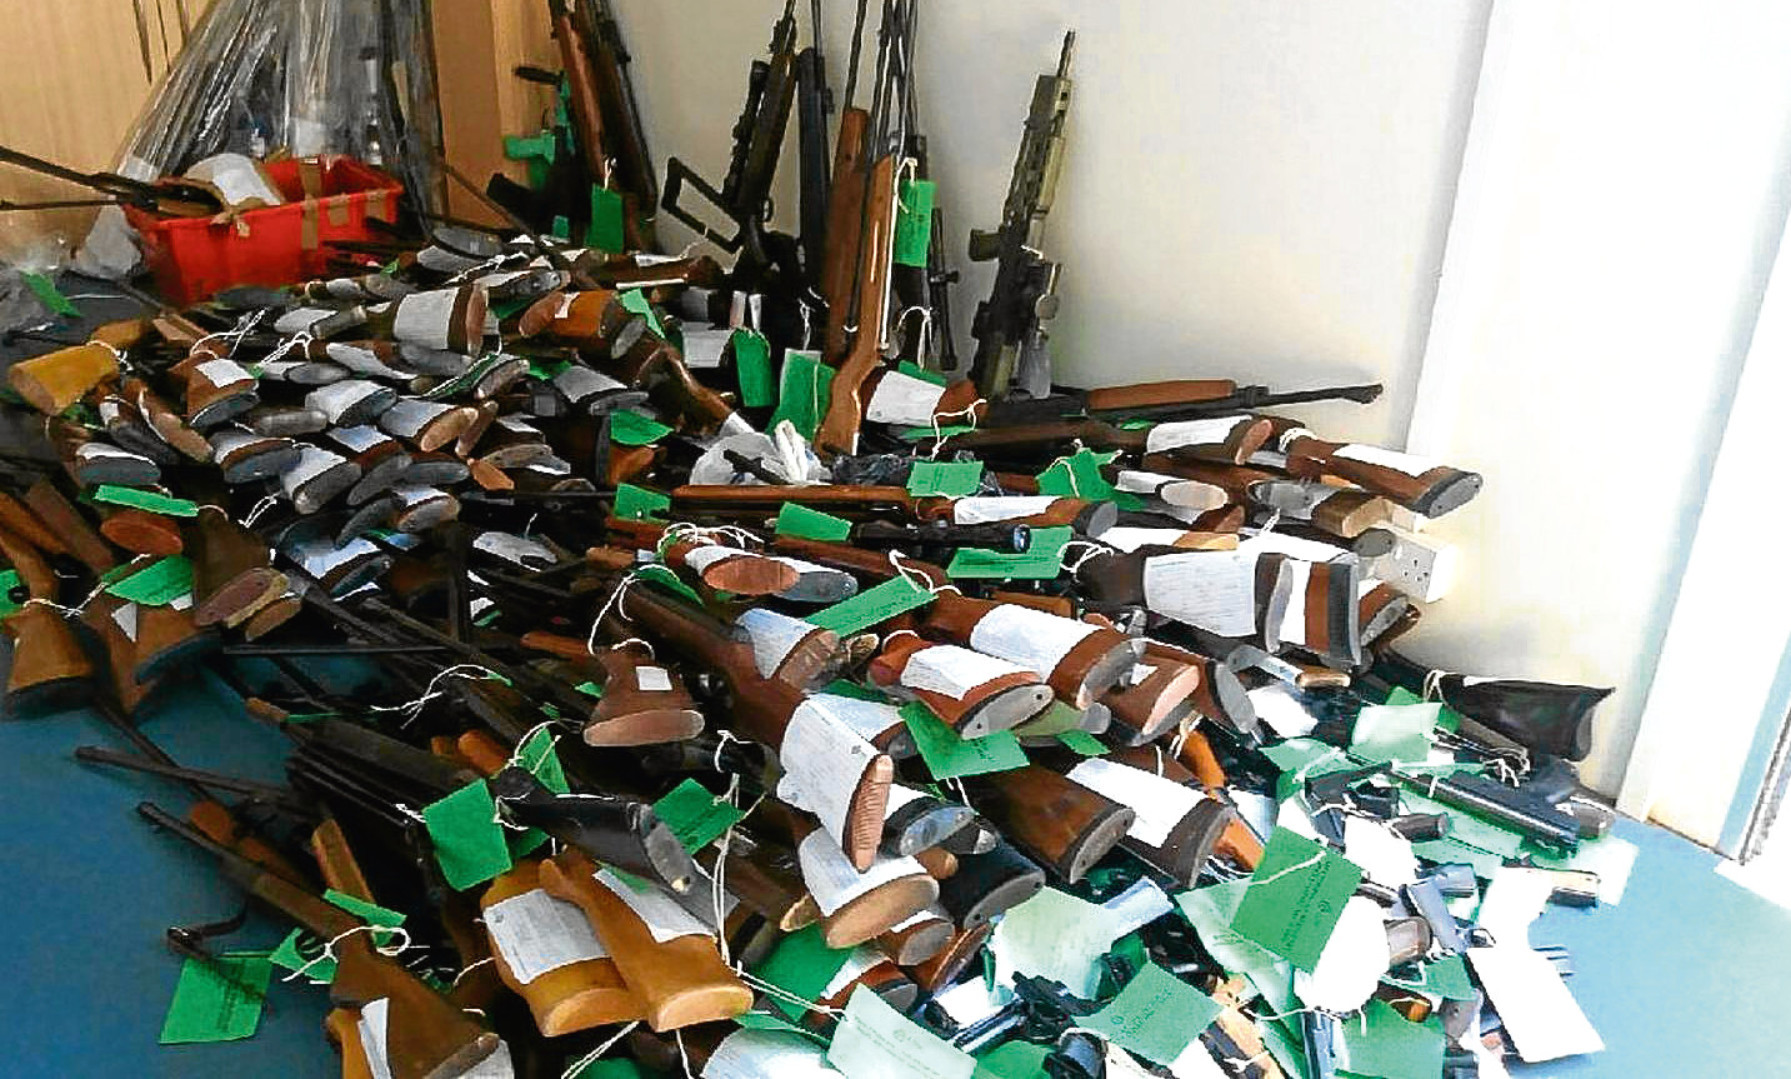 Air weapons surrendered to police before licensing regulations were introduced.